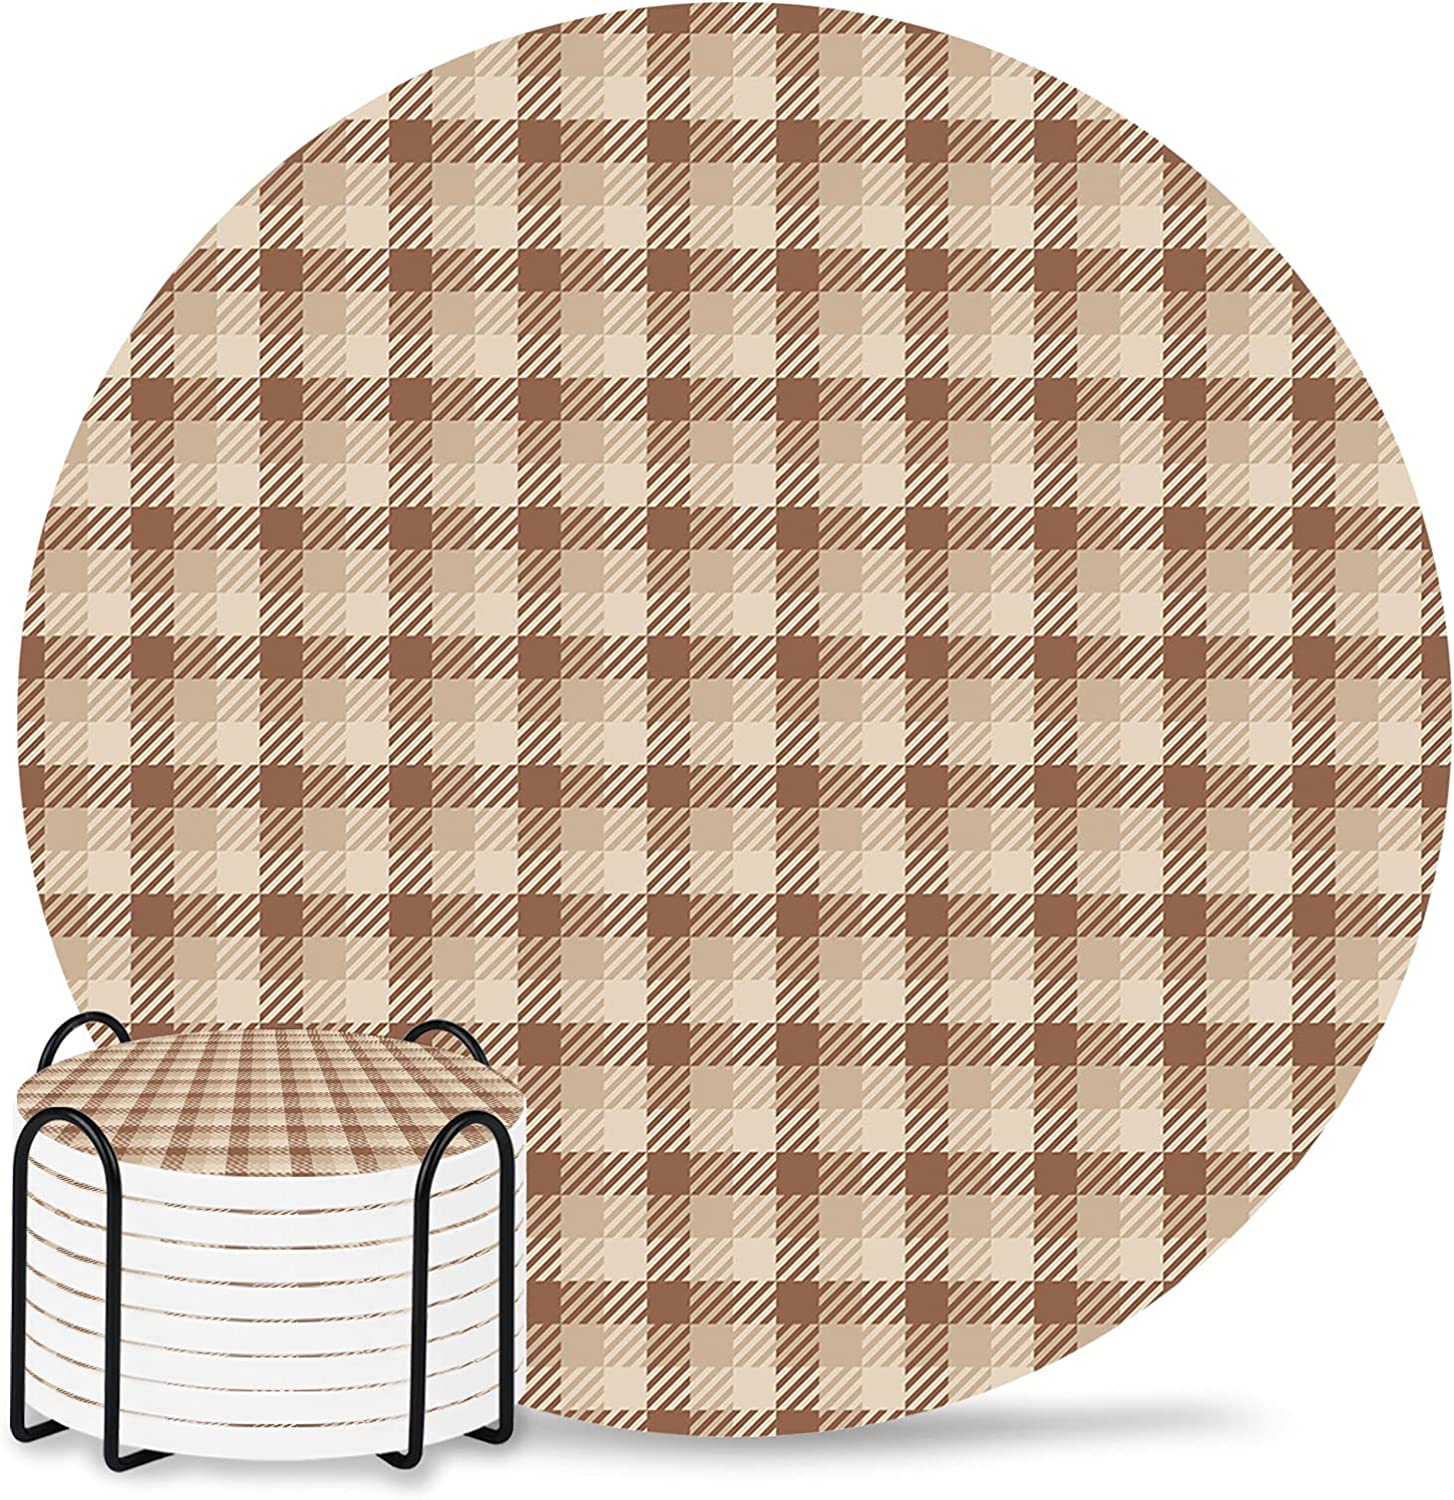 Autumn 8-Piece Memphis Mall Set with Holder Coaster Cer Mail order for Drinks Absorbent